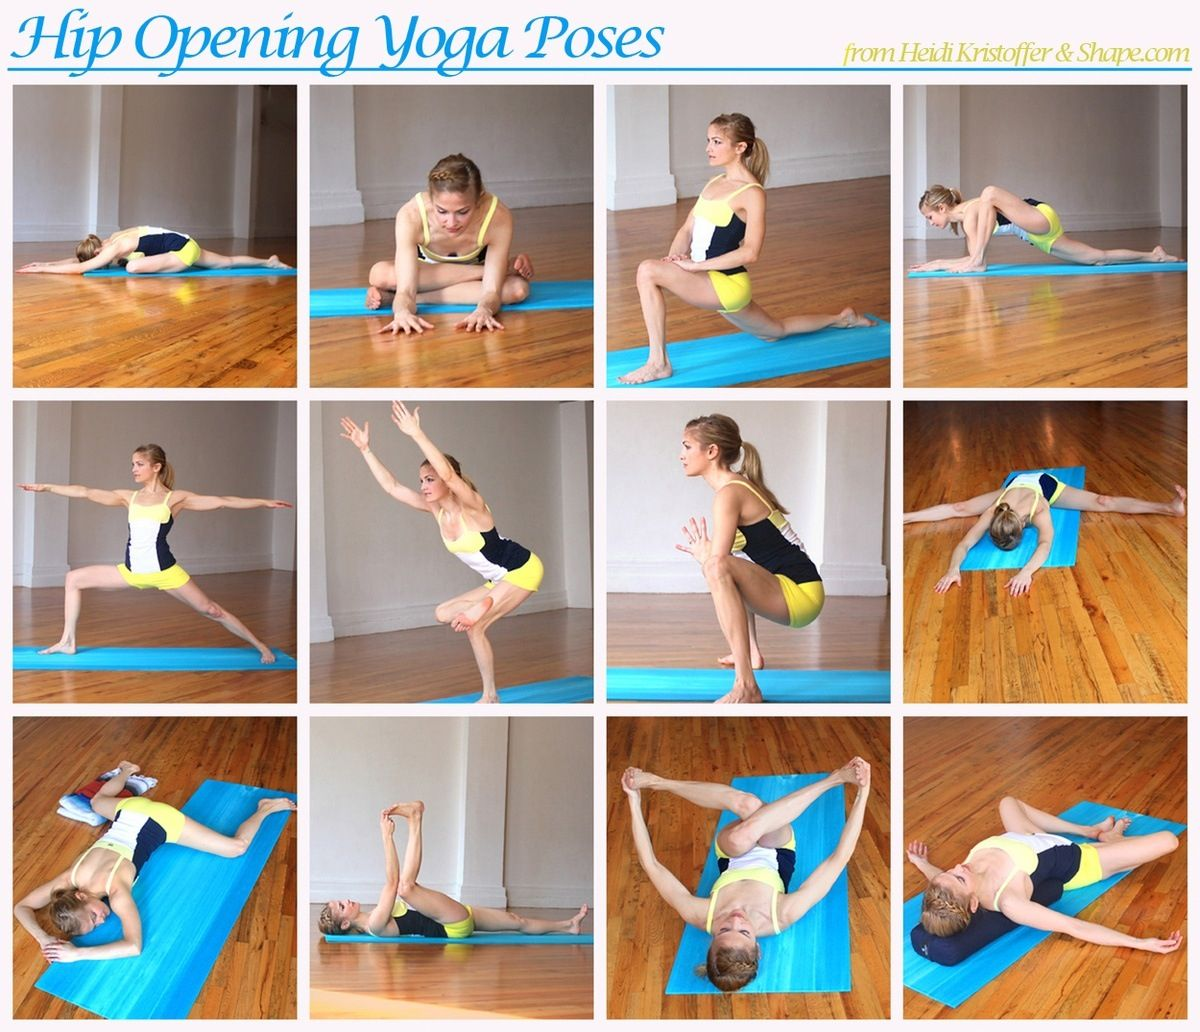 Hip opening yoga sequence #YogaSeries  #YogaWorkout  #Yoga Routine